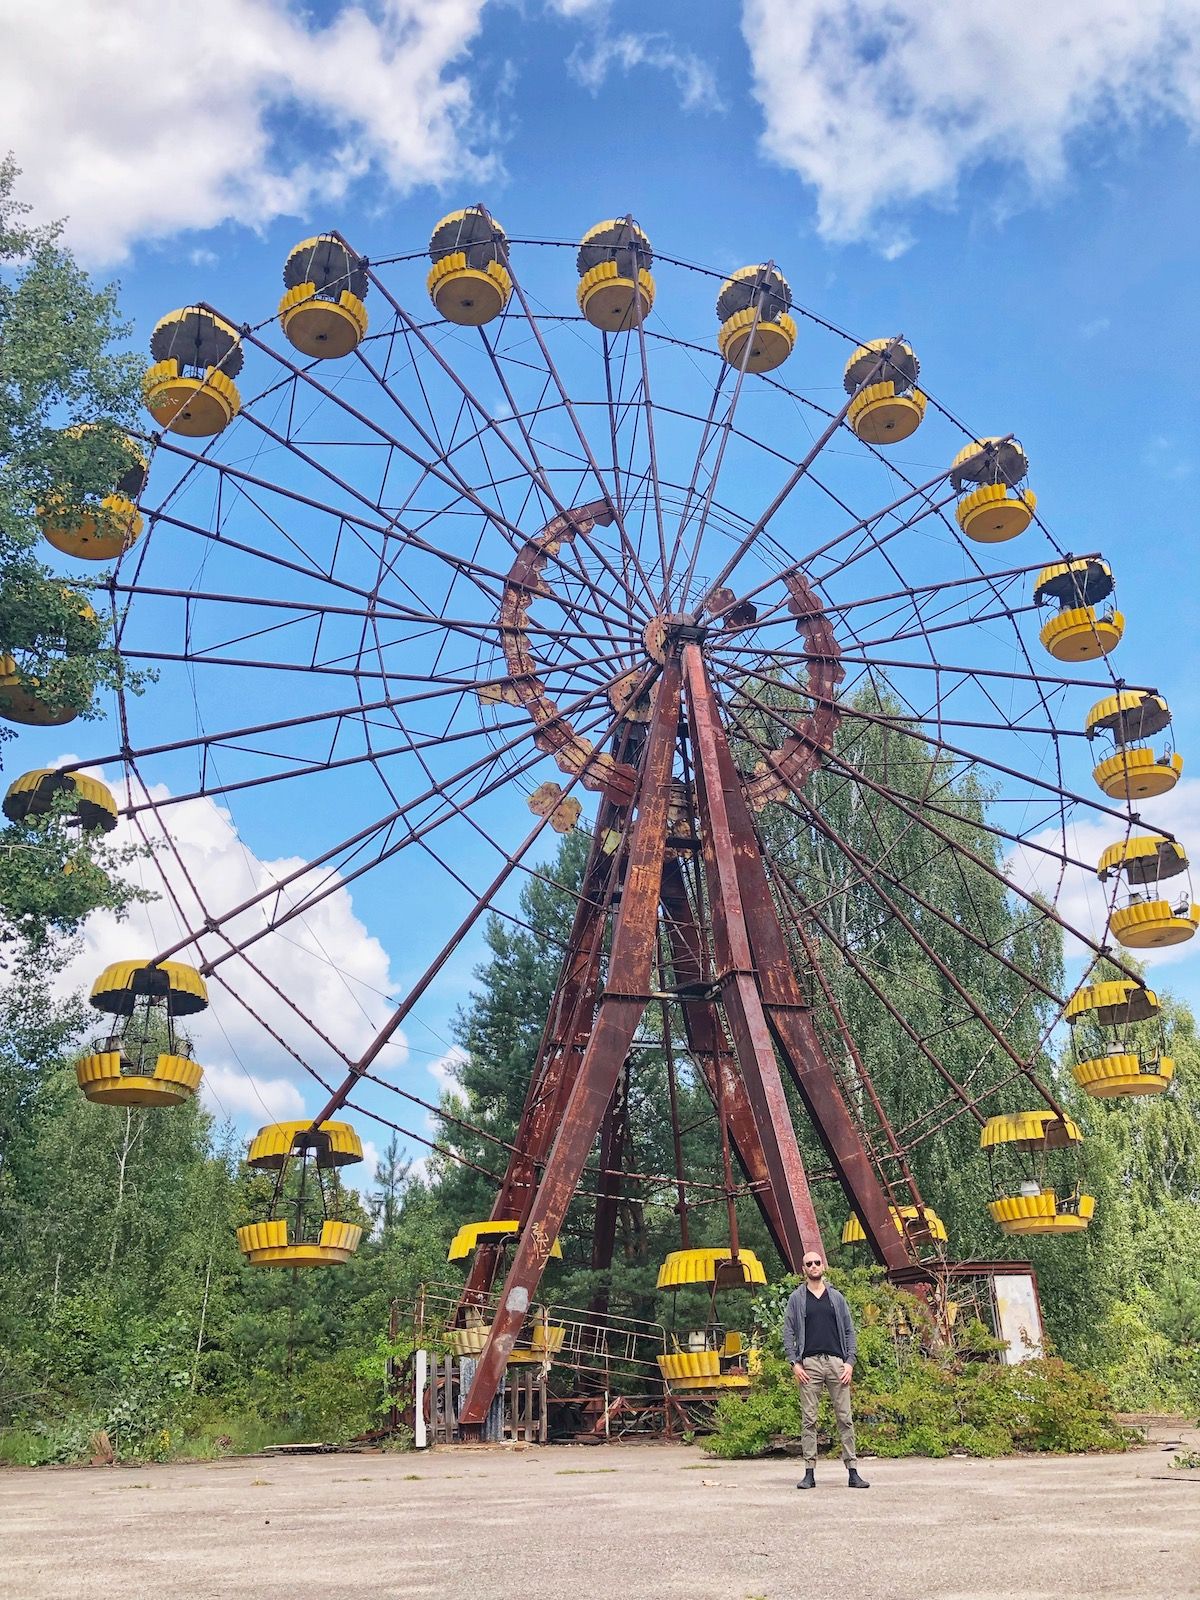 Man stands at abandoned amusement park in Chernobyl.